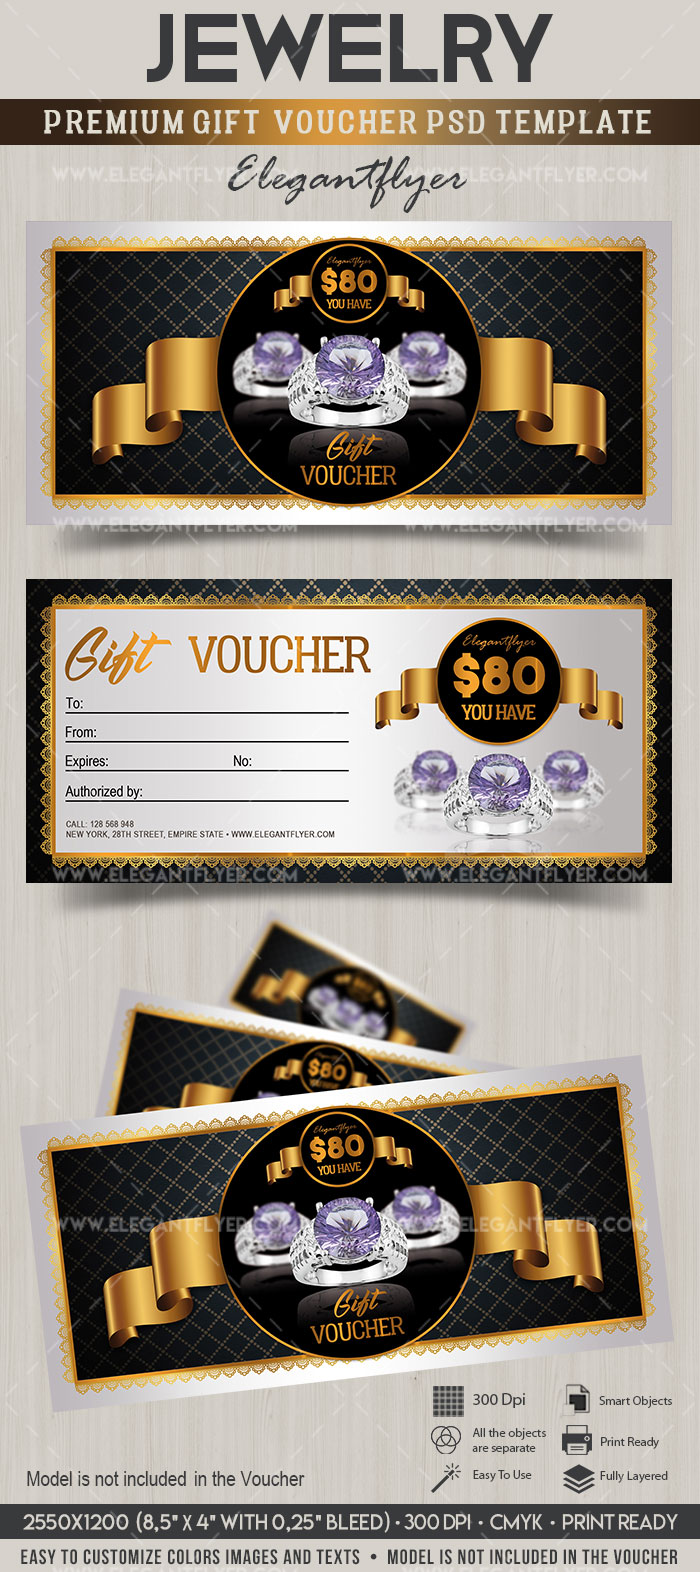 Jewelry premium gift certificate psd template by elegantflyer jewelry premium gift certificate psd template yelopaper Images